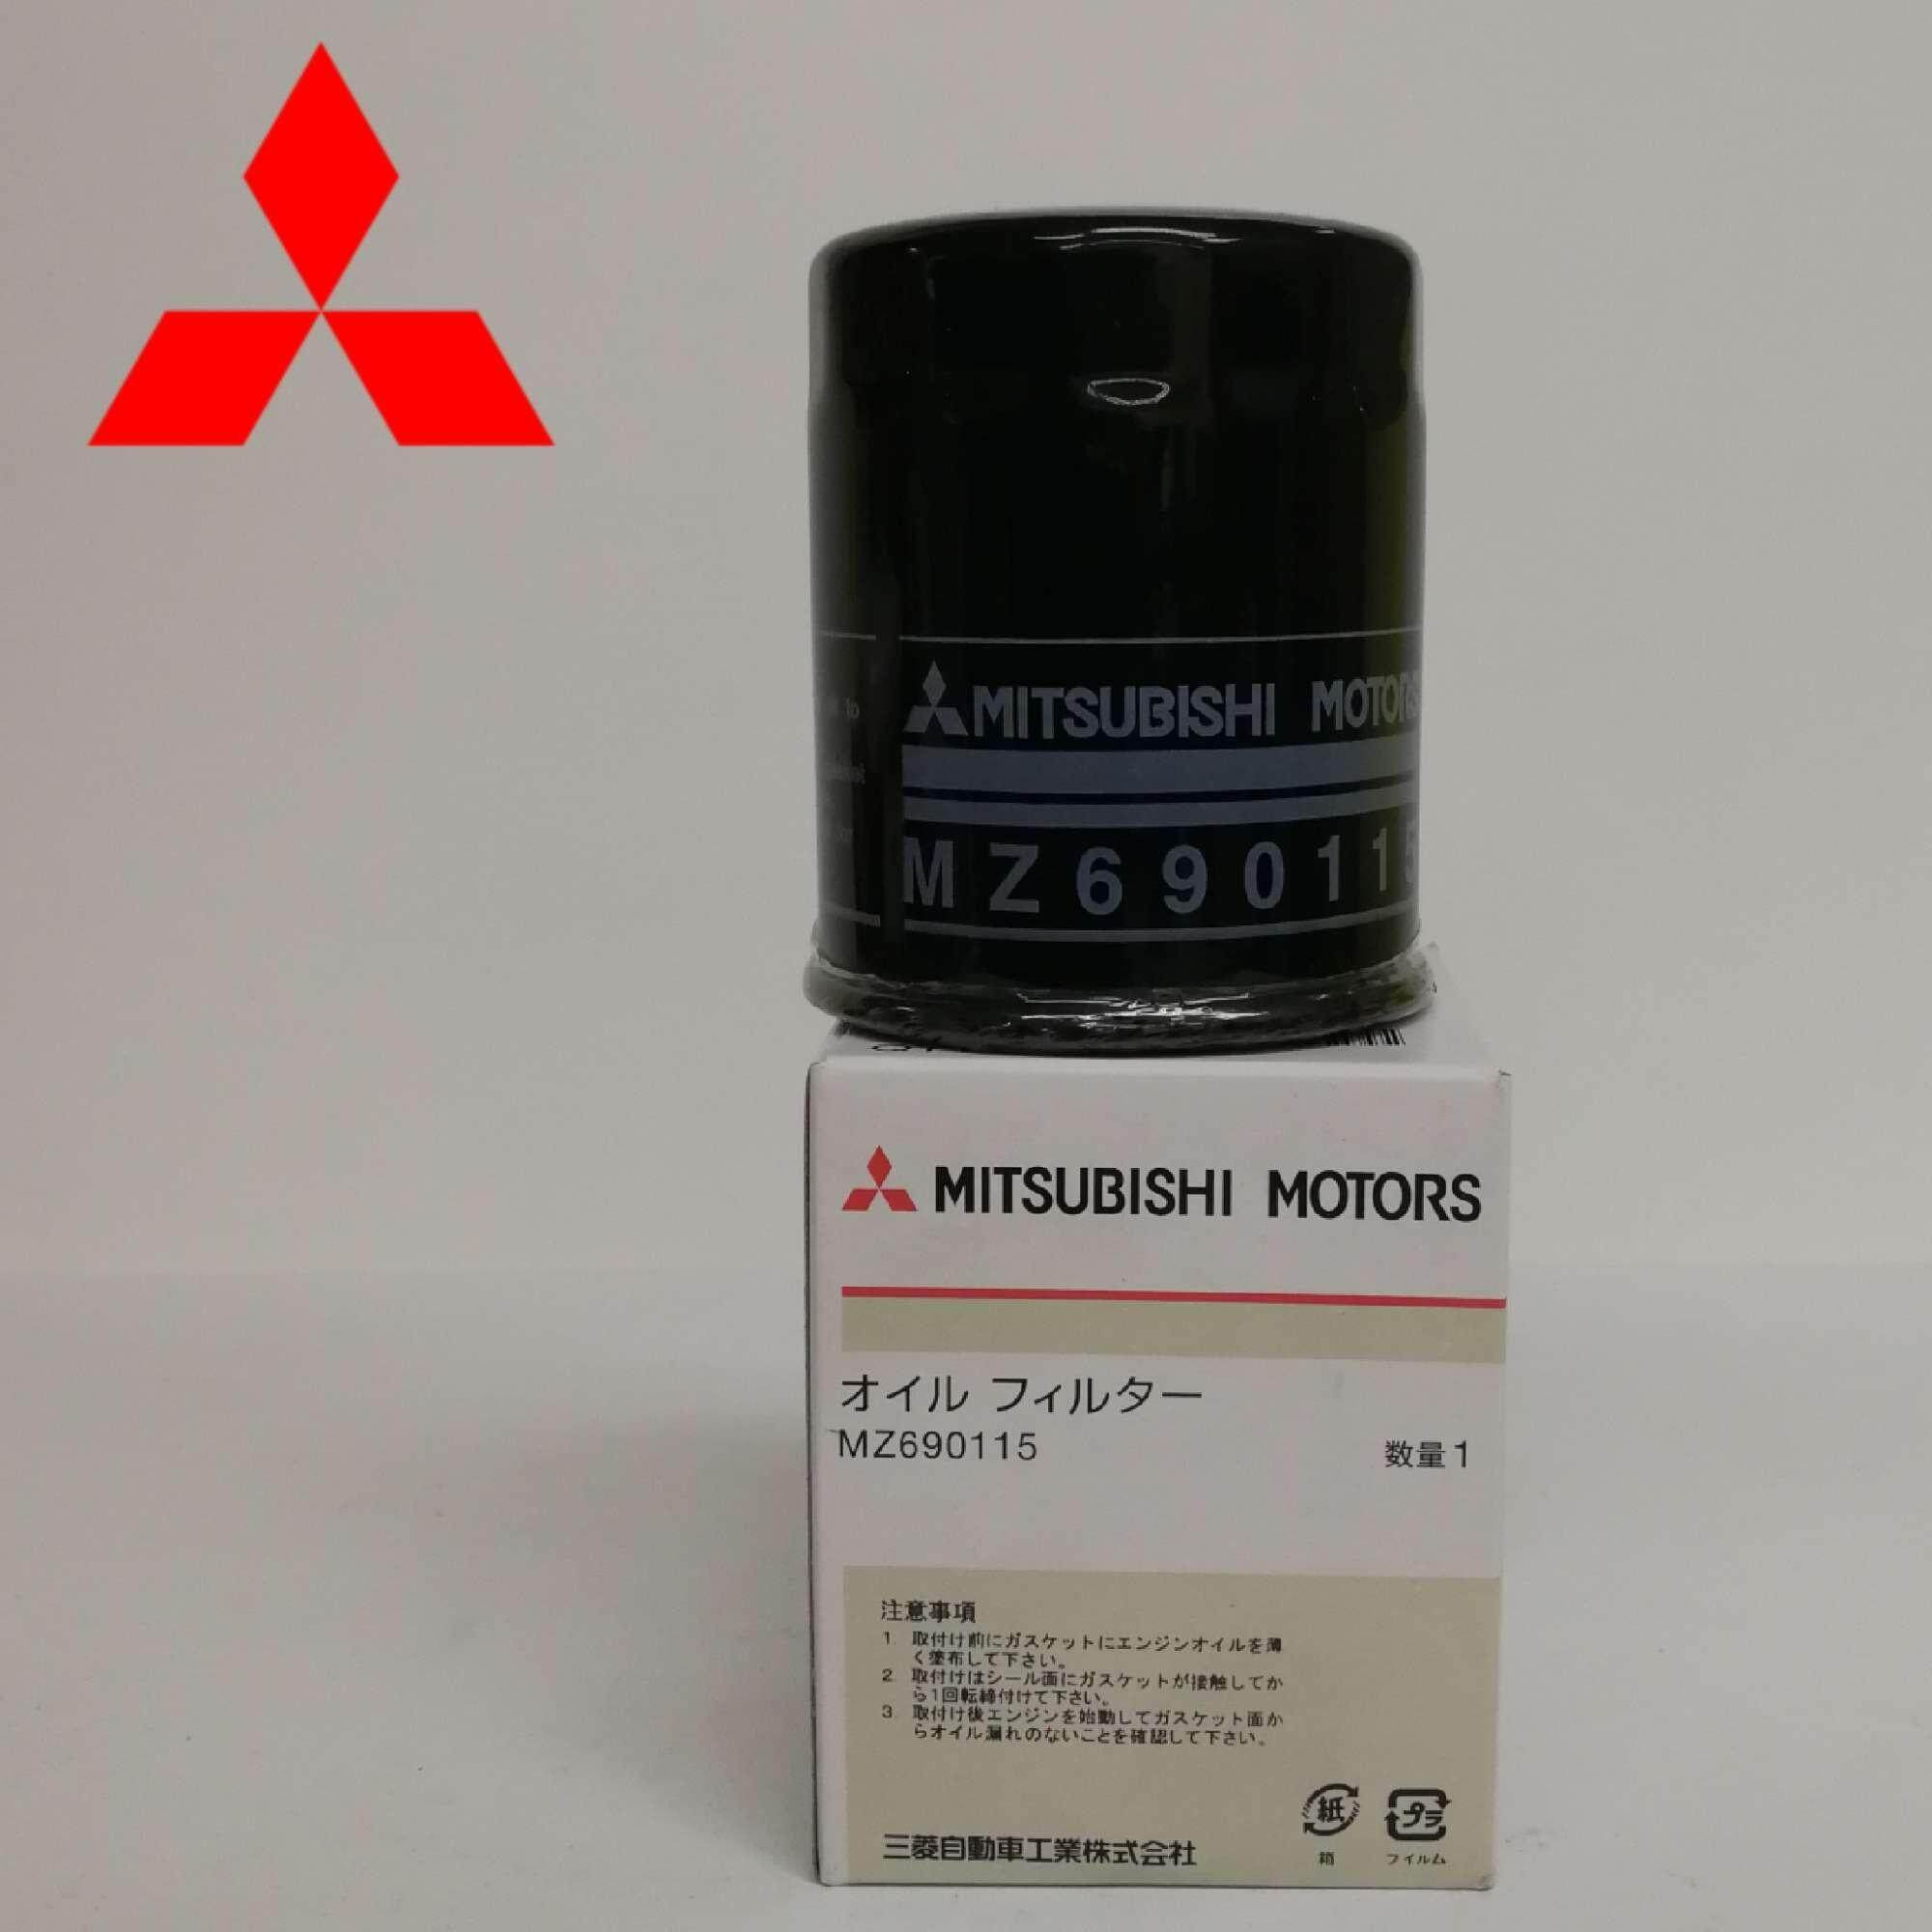 Mitsubishi Auto Parts Spares Price In Malaysia Best Timing Belt For Triton Oil Filter Lancer Gt Inspira Mirage Grandis